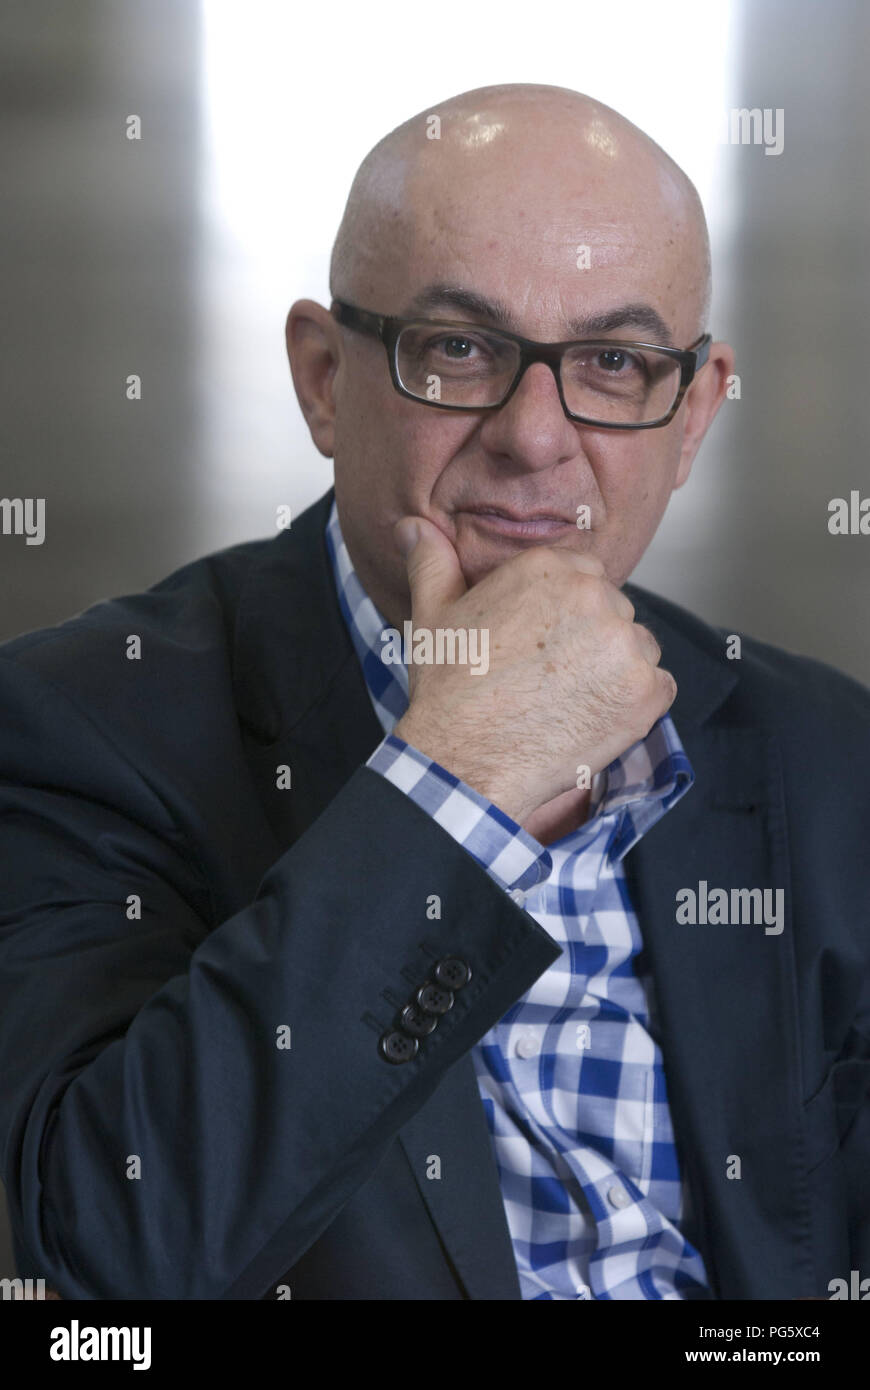 Leipzig, DEU, 16.03.2012: Portrait of Thomas Medicus publicist, and author (Germany) - Stock Image